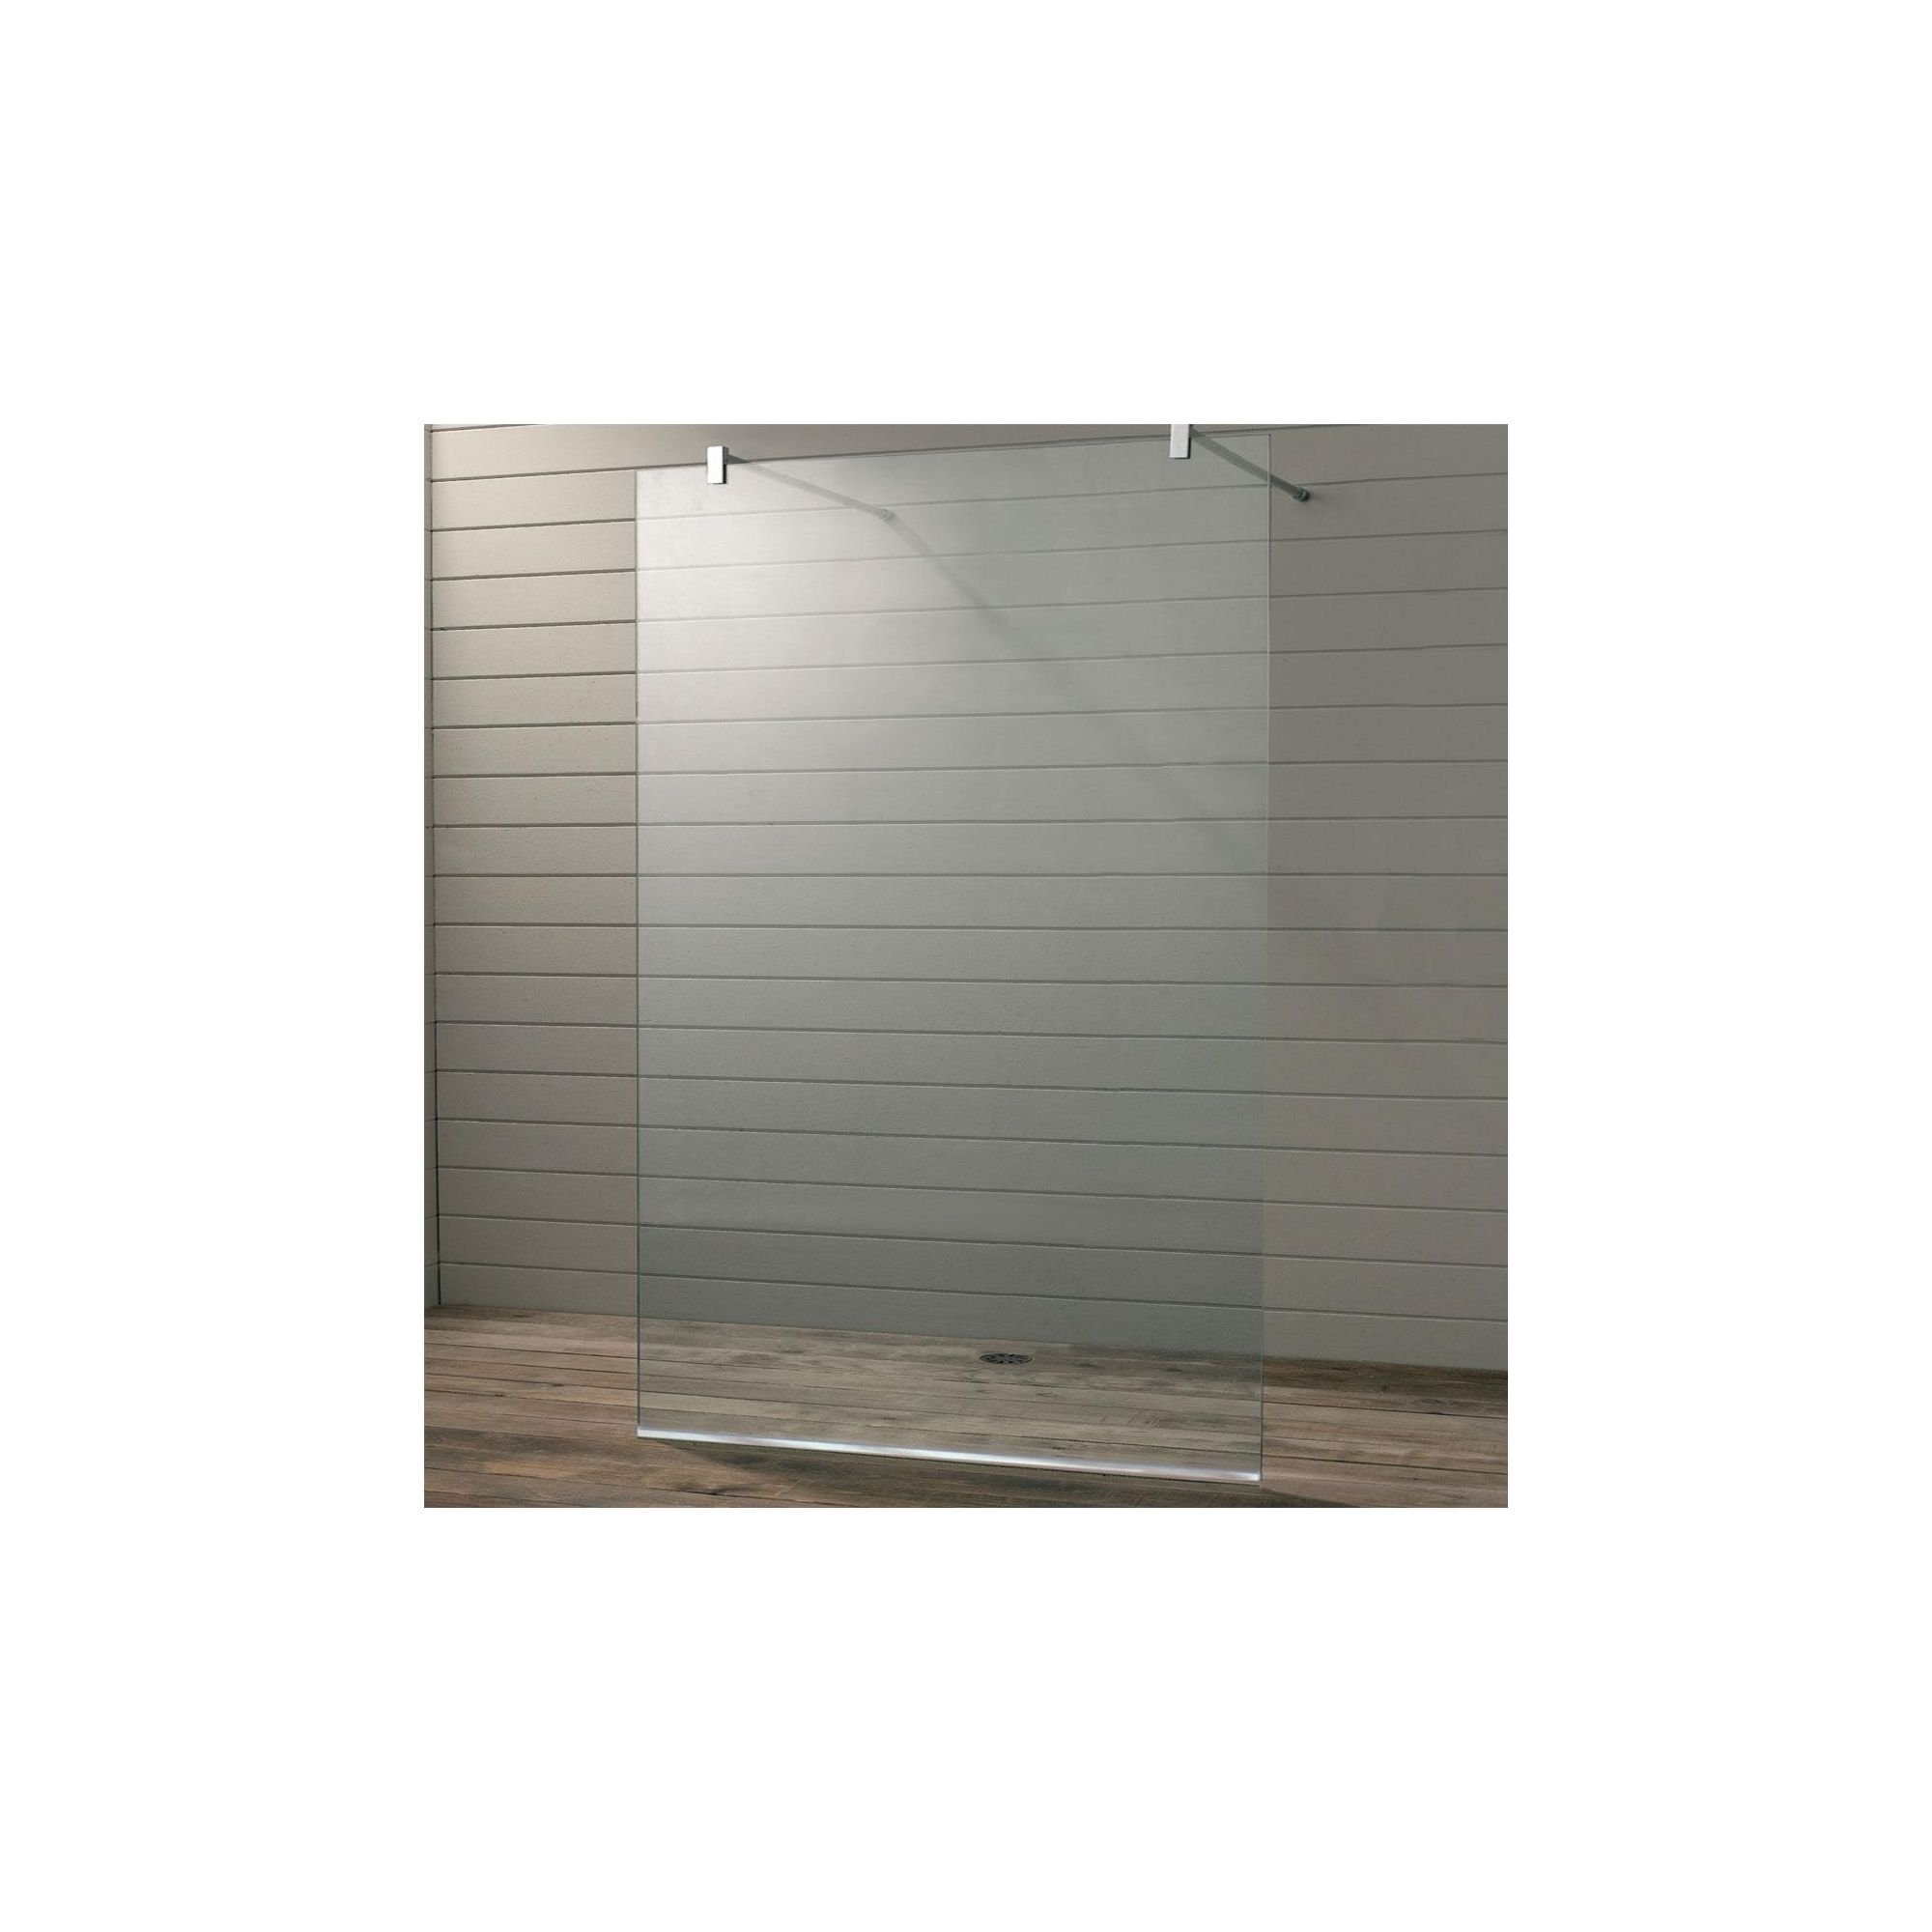 Duchy Premium Wet Room Glass Shower Panel, 1000mm x 760mm, 10mm Glass, Low Profile Tray at Tesco Direct